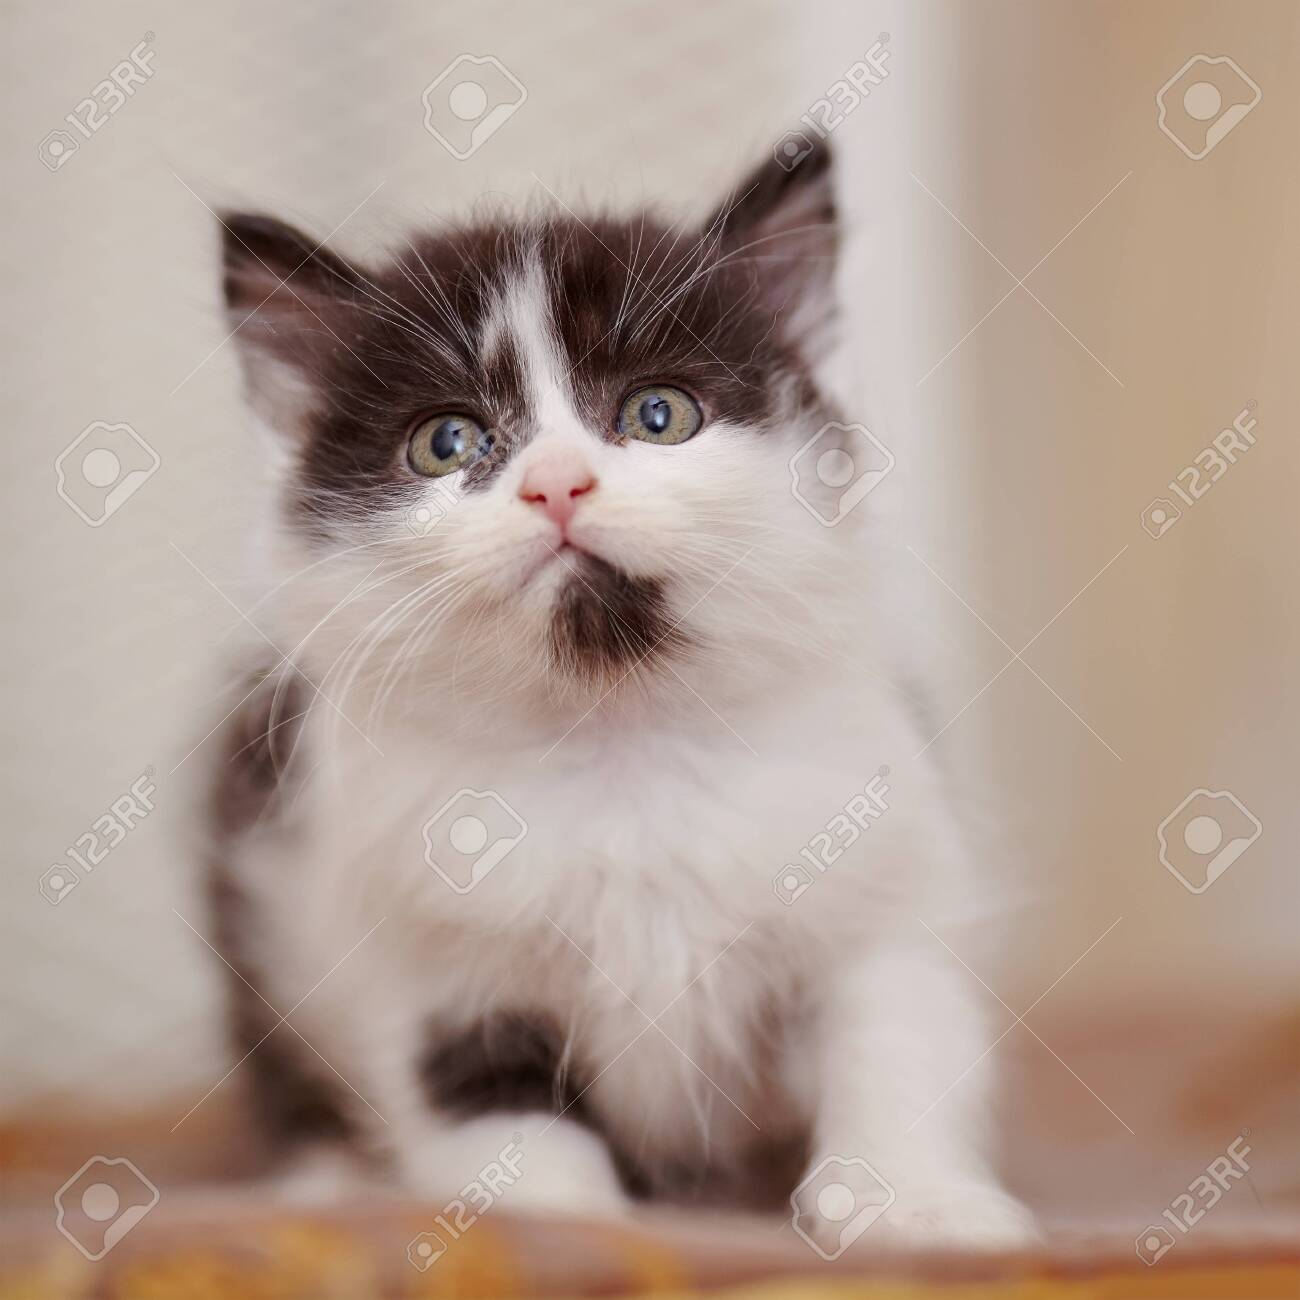 Little domestic kitten of a color, white with black spots - 120601146